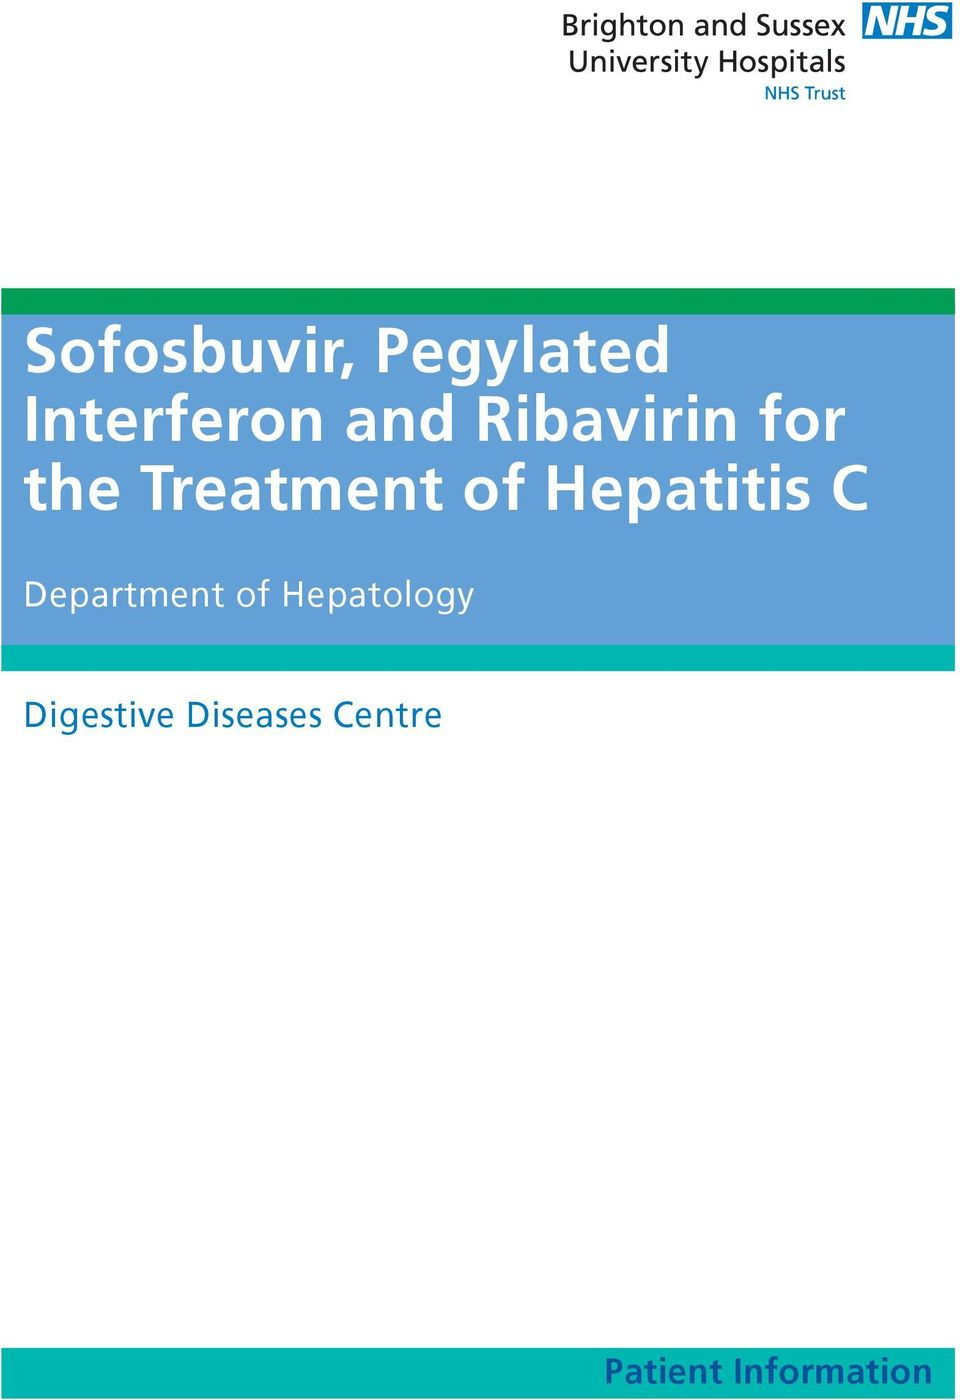 Hepatitis C Department of Hepatology